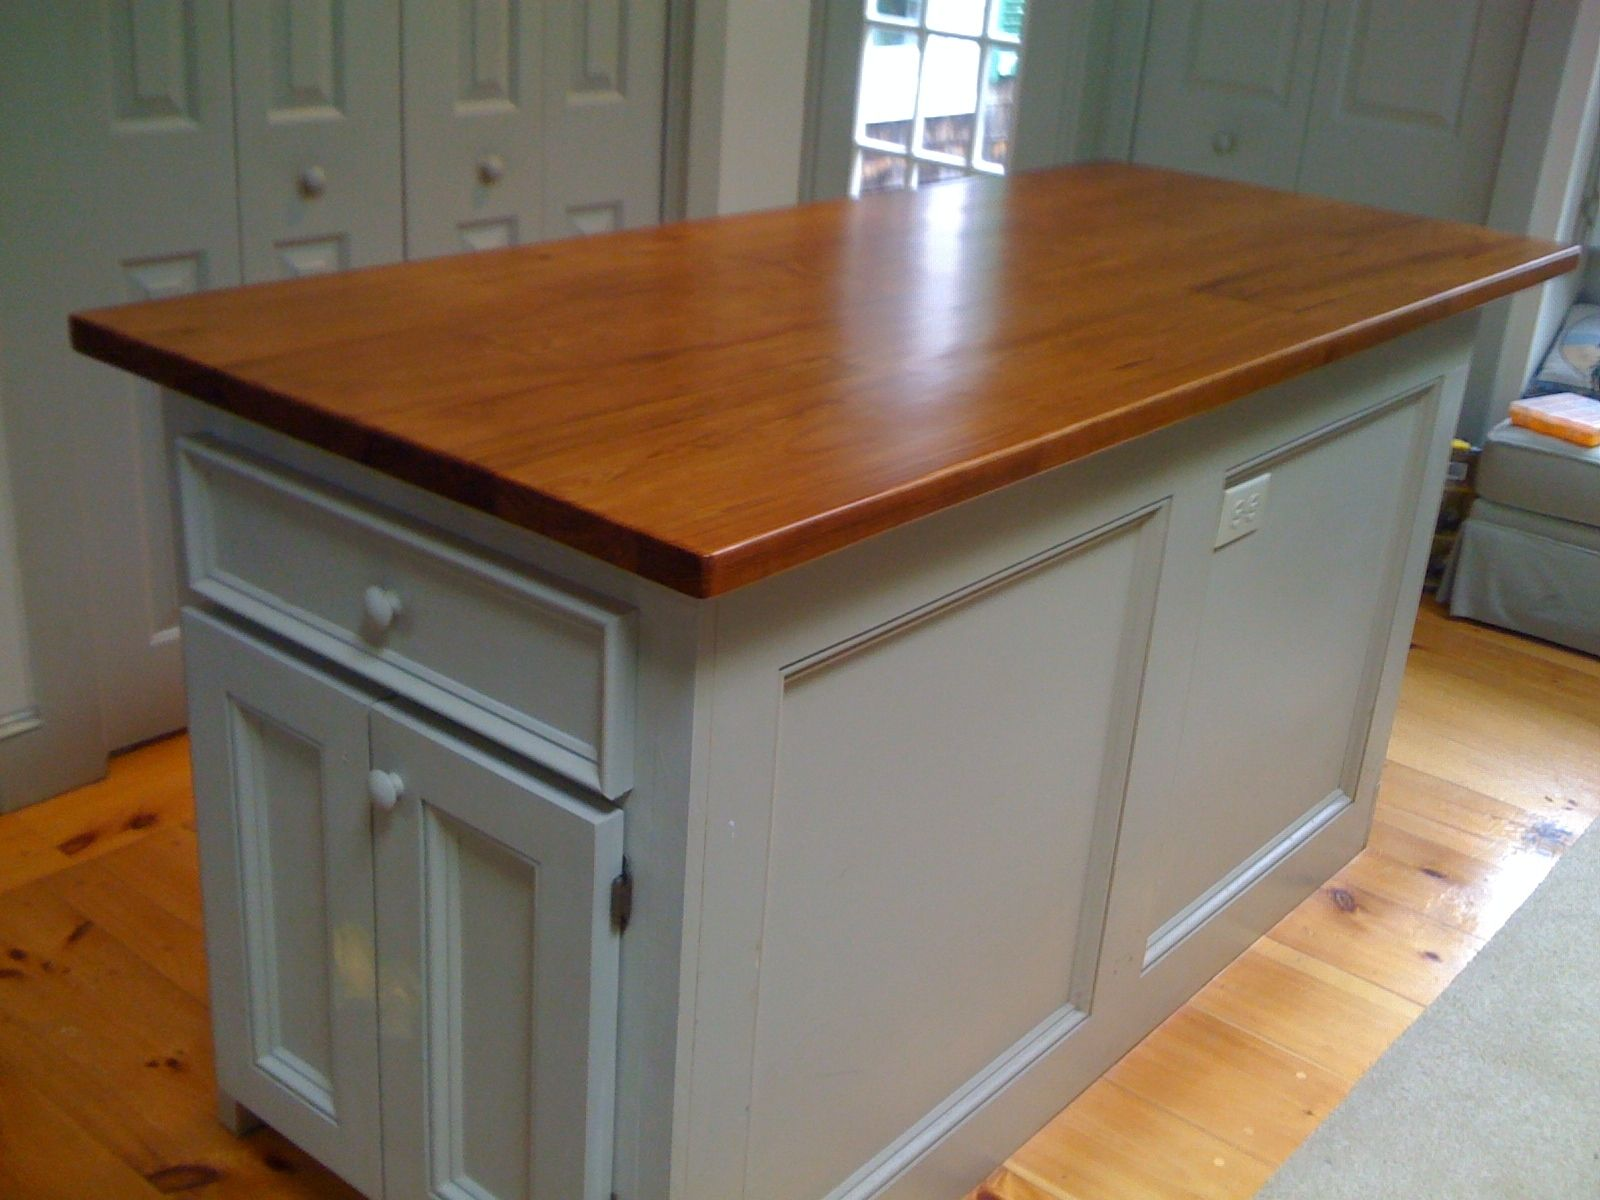 handmade custom kitchen island reclaimed wood top by cape cod custom made custom kitchen island reclaimed wood top